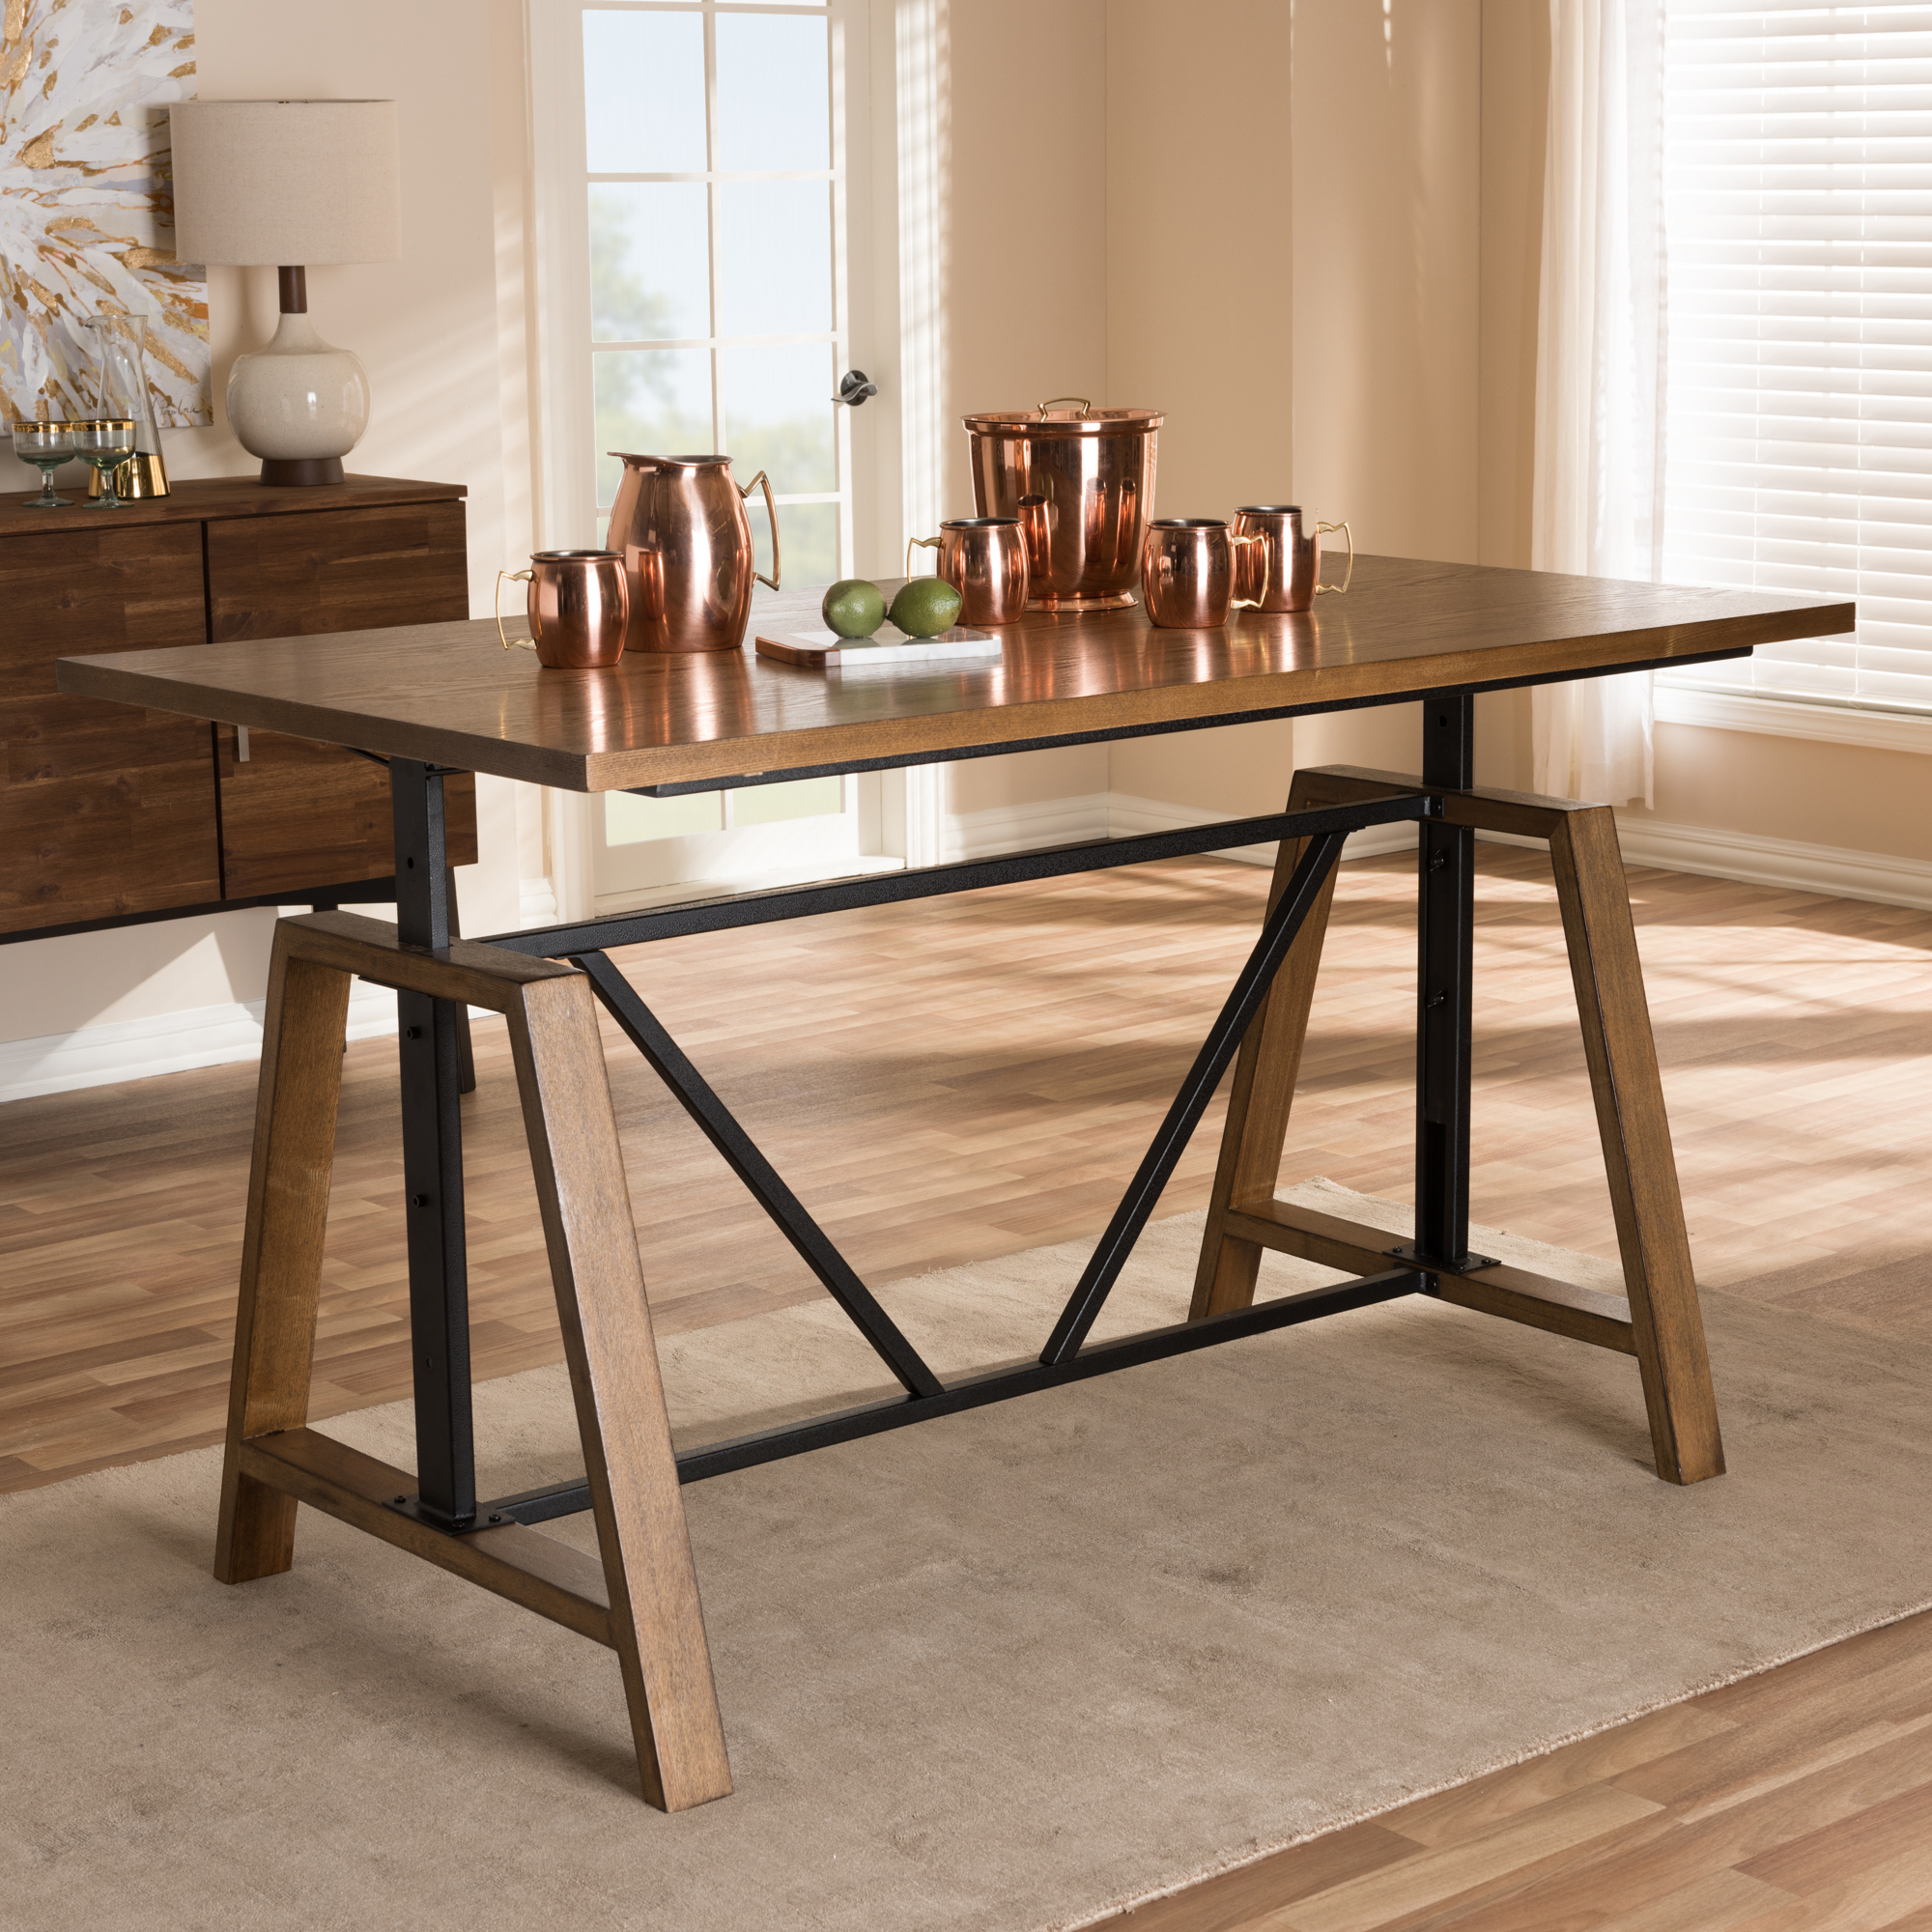 ... Baxton Studio Nico Rustic Industrial Metal And Distressed Wood  Adjustable Height Work Table   BSOYLX  ...